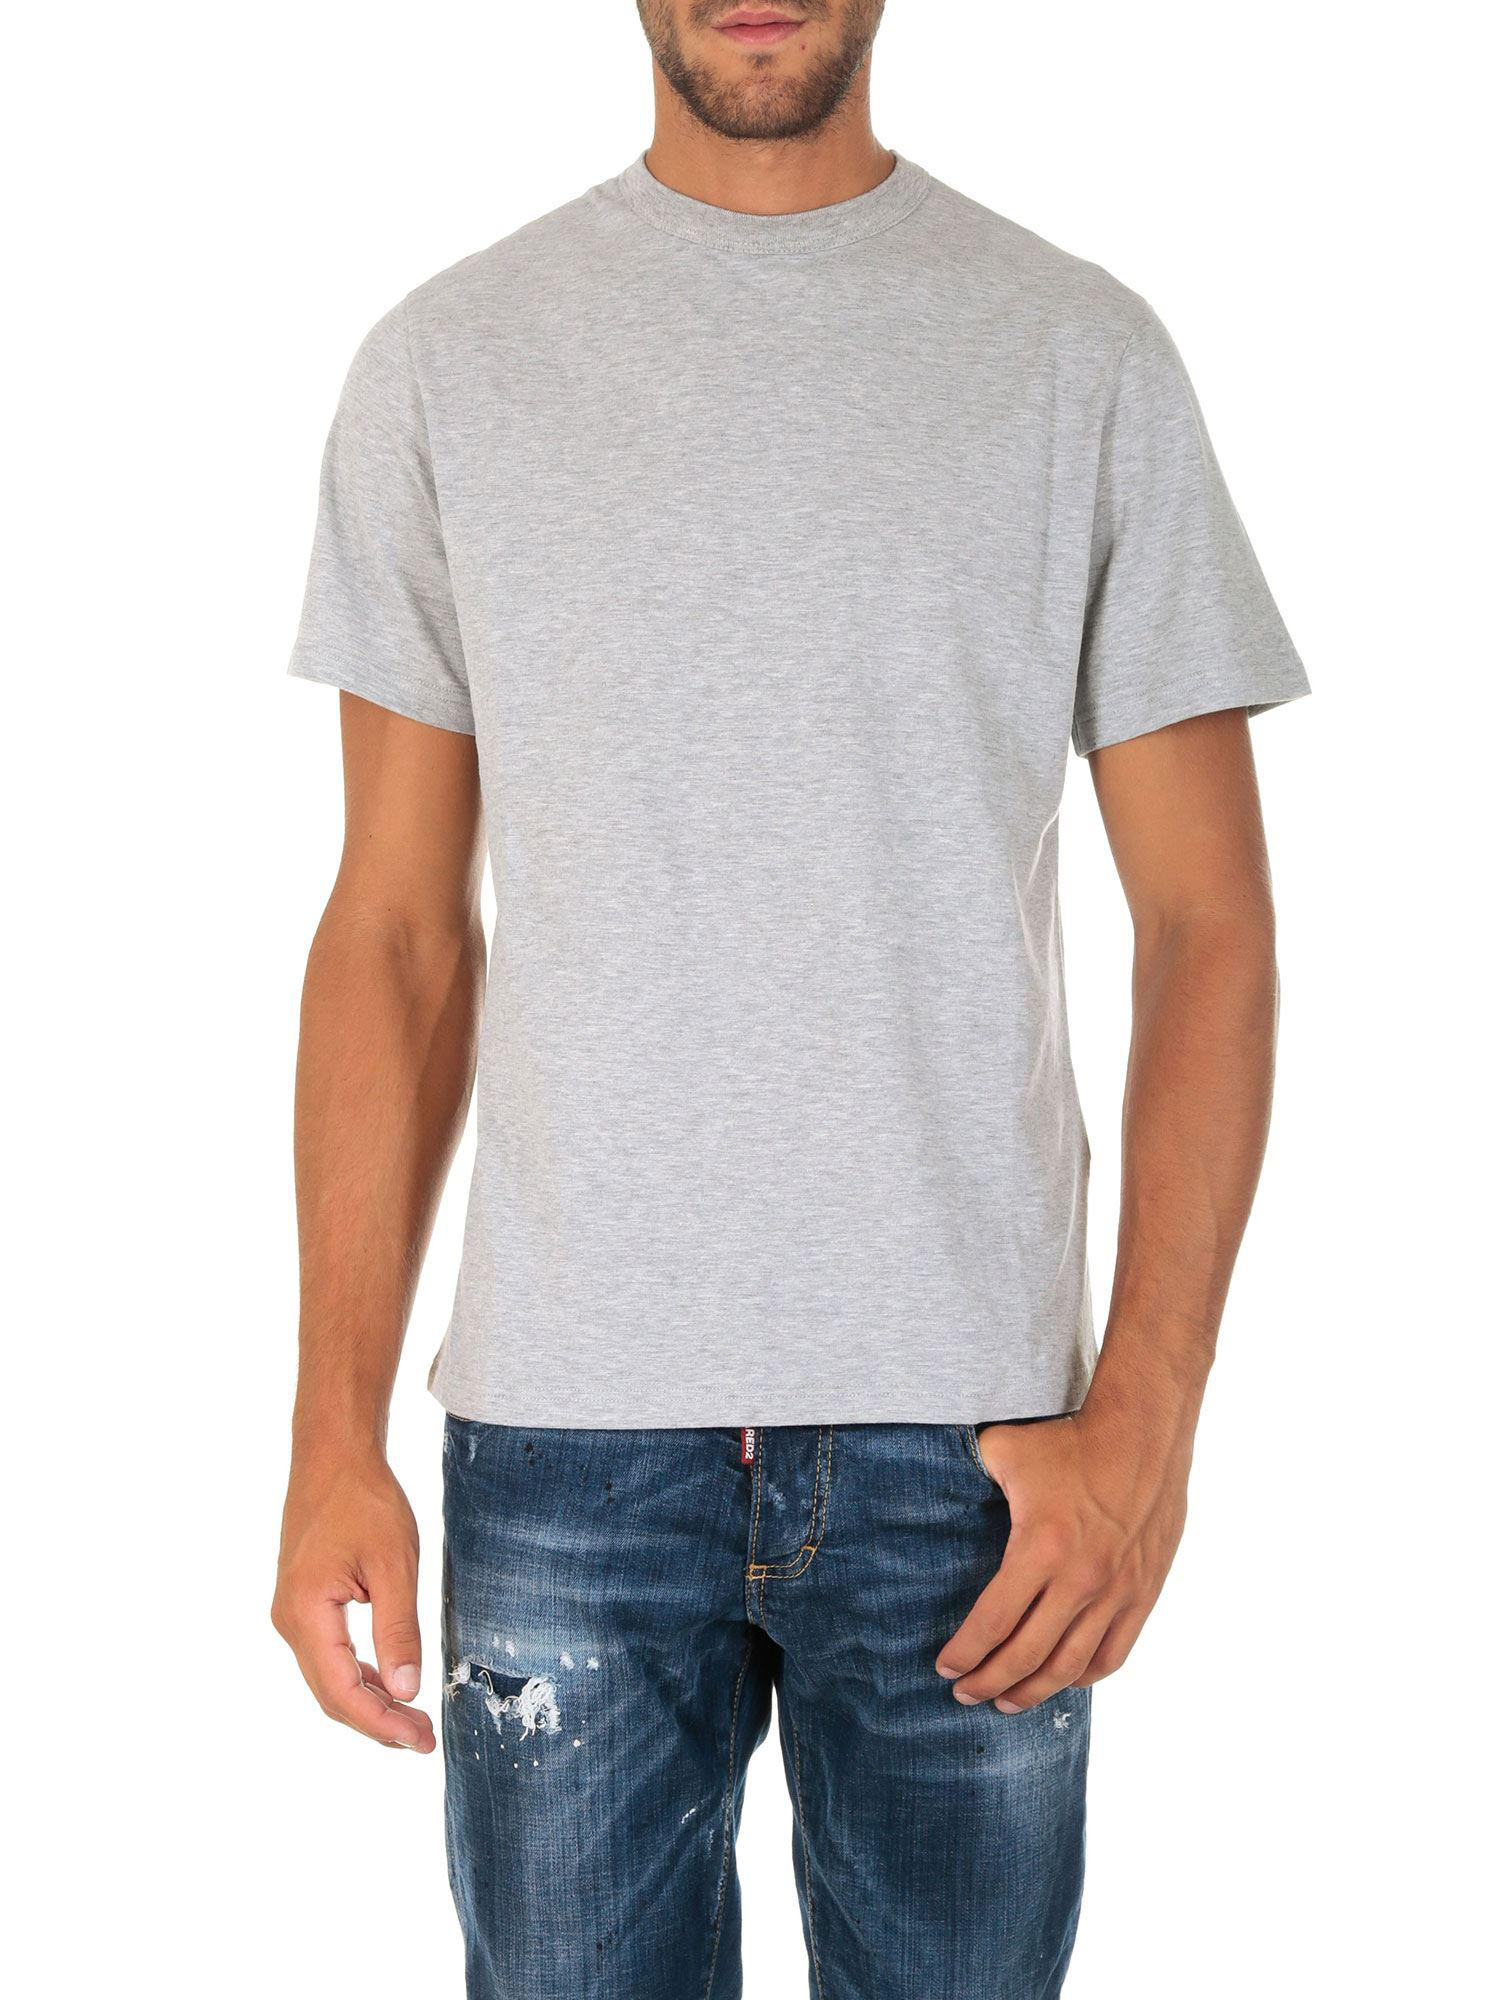 2c87f9959cb6 Golden Goose Deluxe Brand Grey T-shirt With Logo Print in Gray for ...